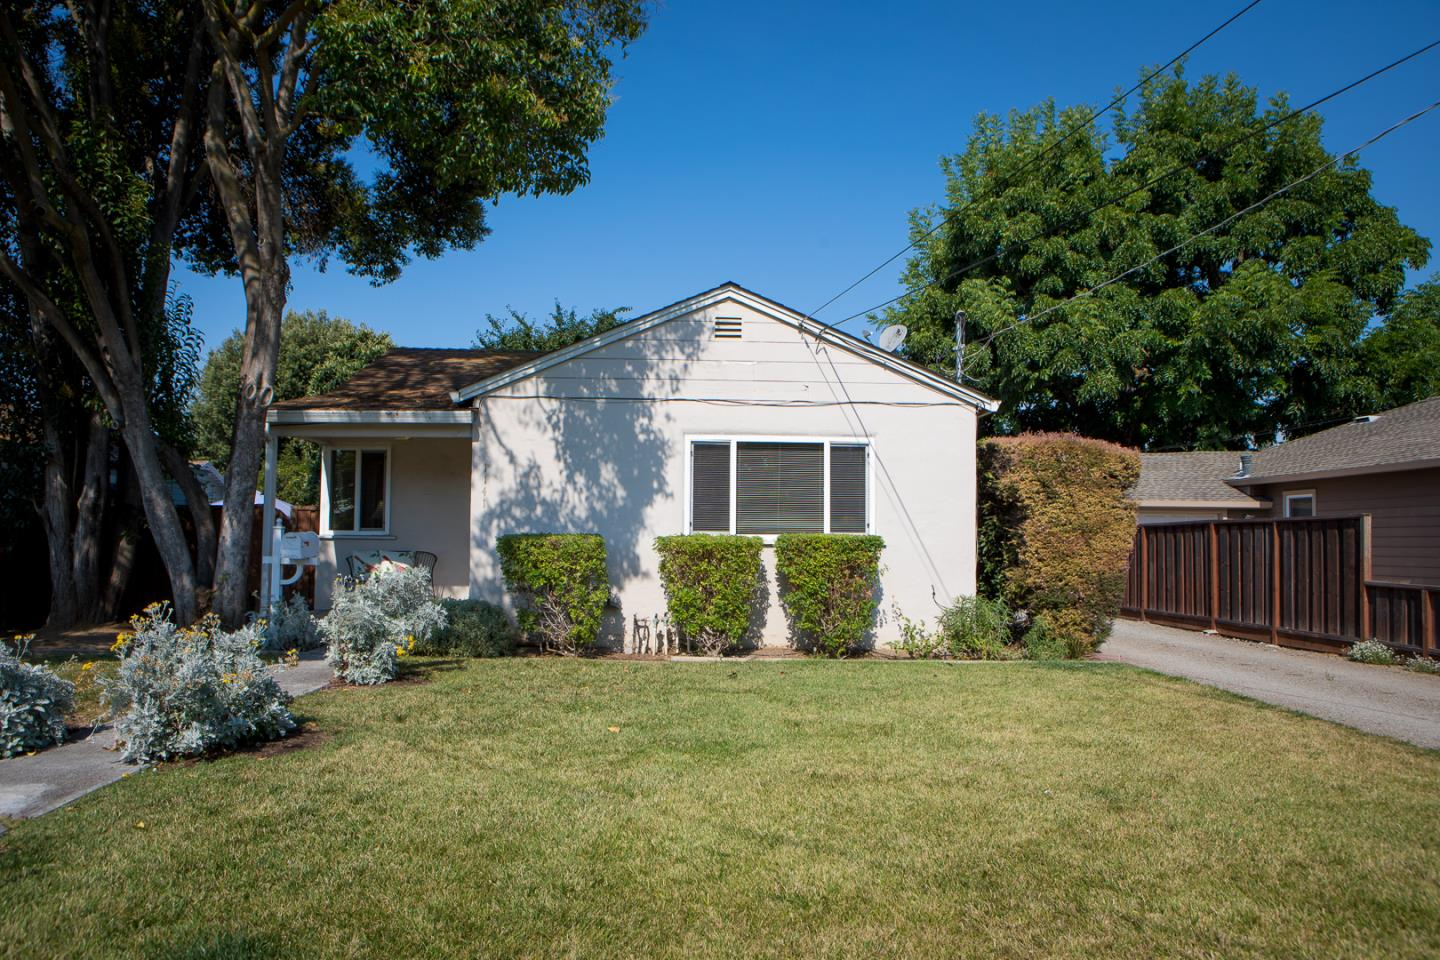 Additional photo for property listing at 1141 Empey Way  San Jose, California 95128 United States